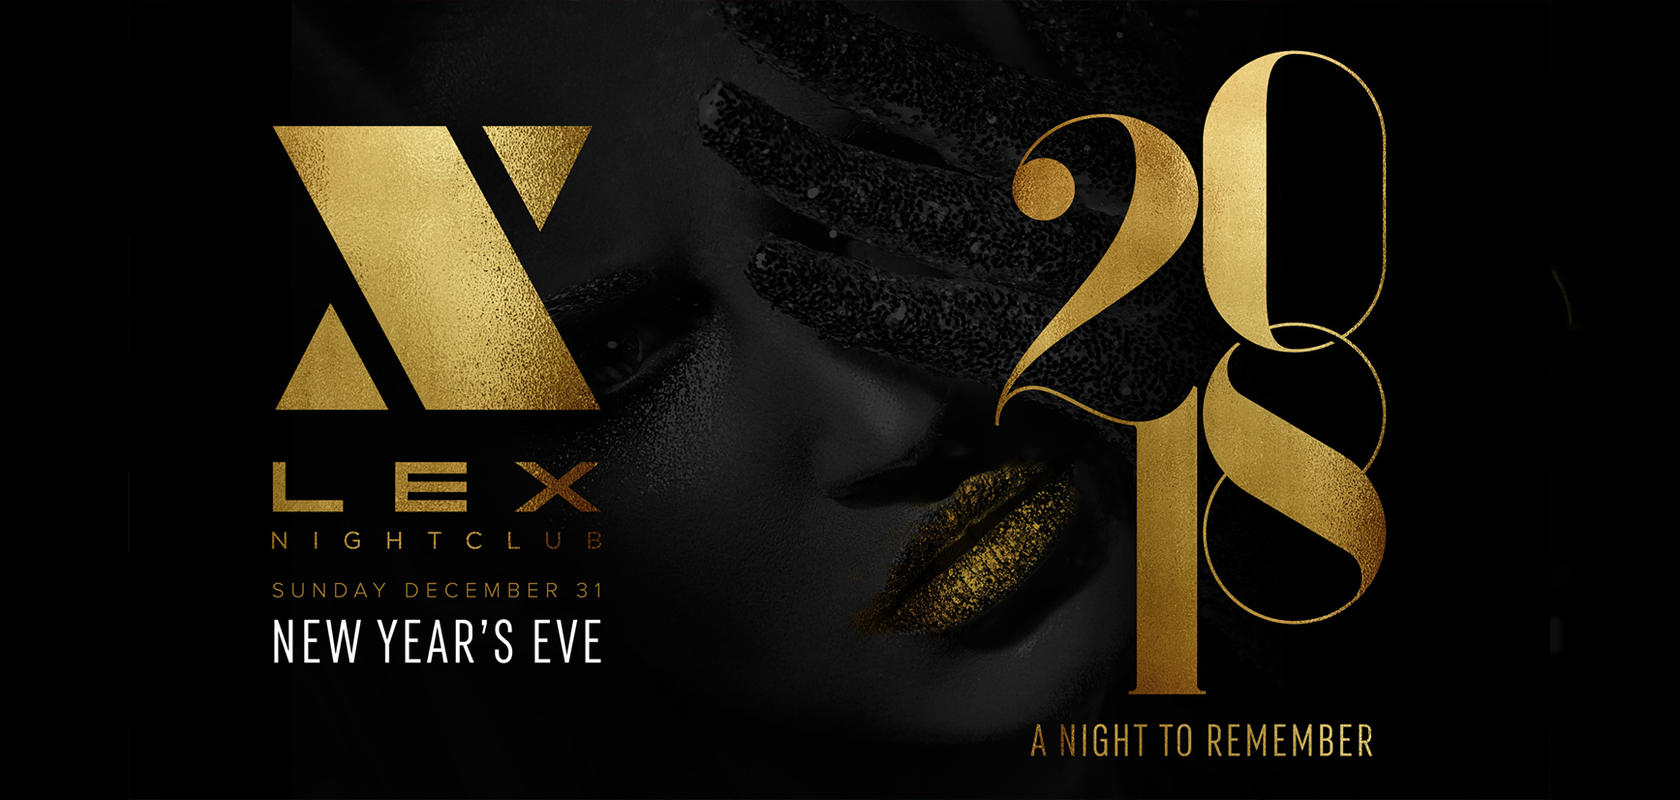 New Year's Eve 2018 at LEX